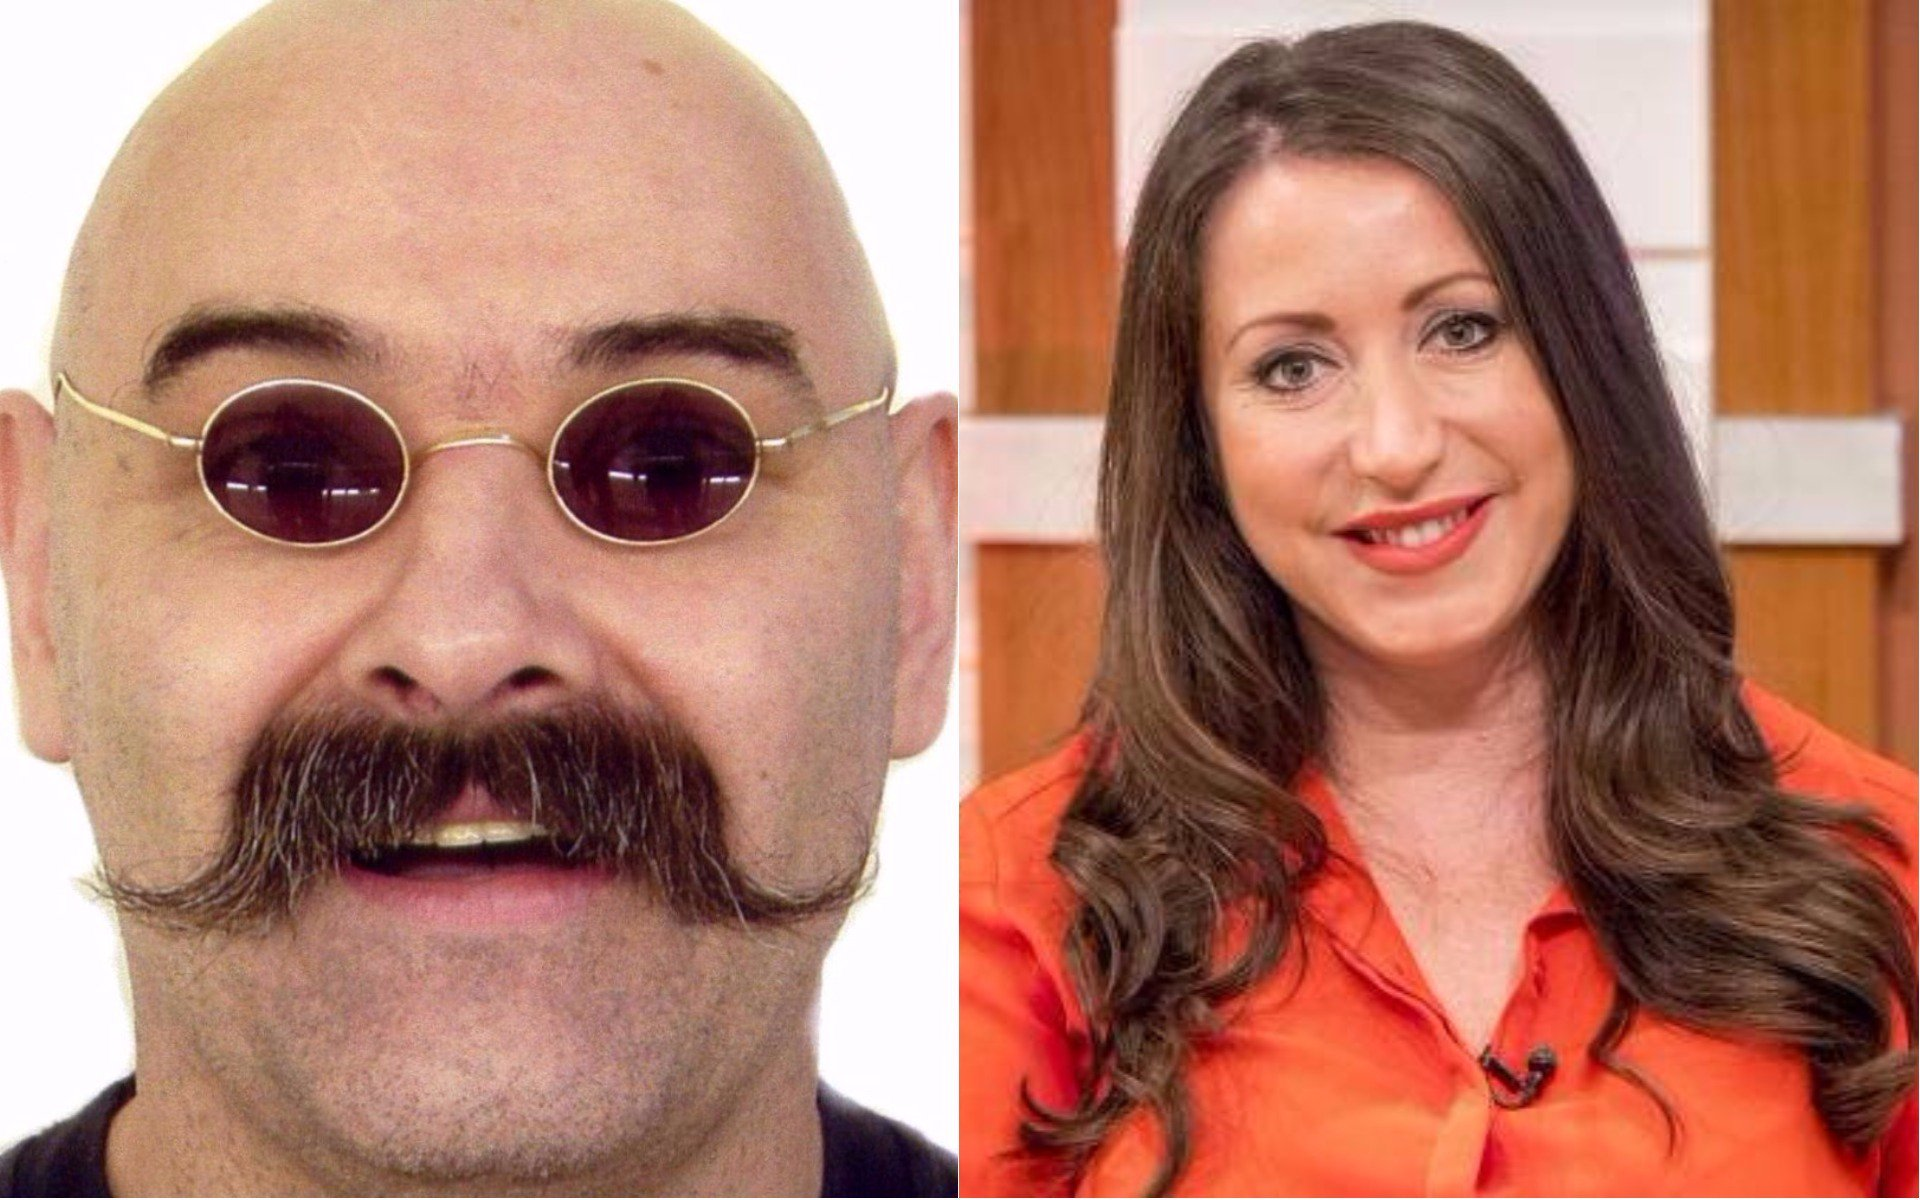 Charles Bronson marries younger actress in a bizarre prison ceremony today https://t.co/QNRKeI1L17 https://t.co/WLLf5MseE7